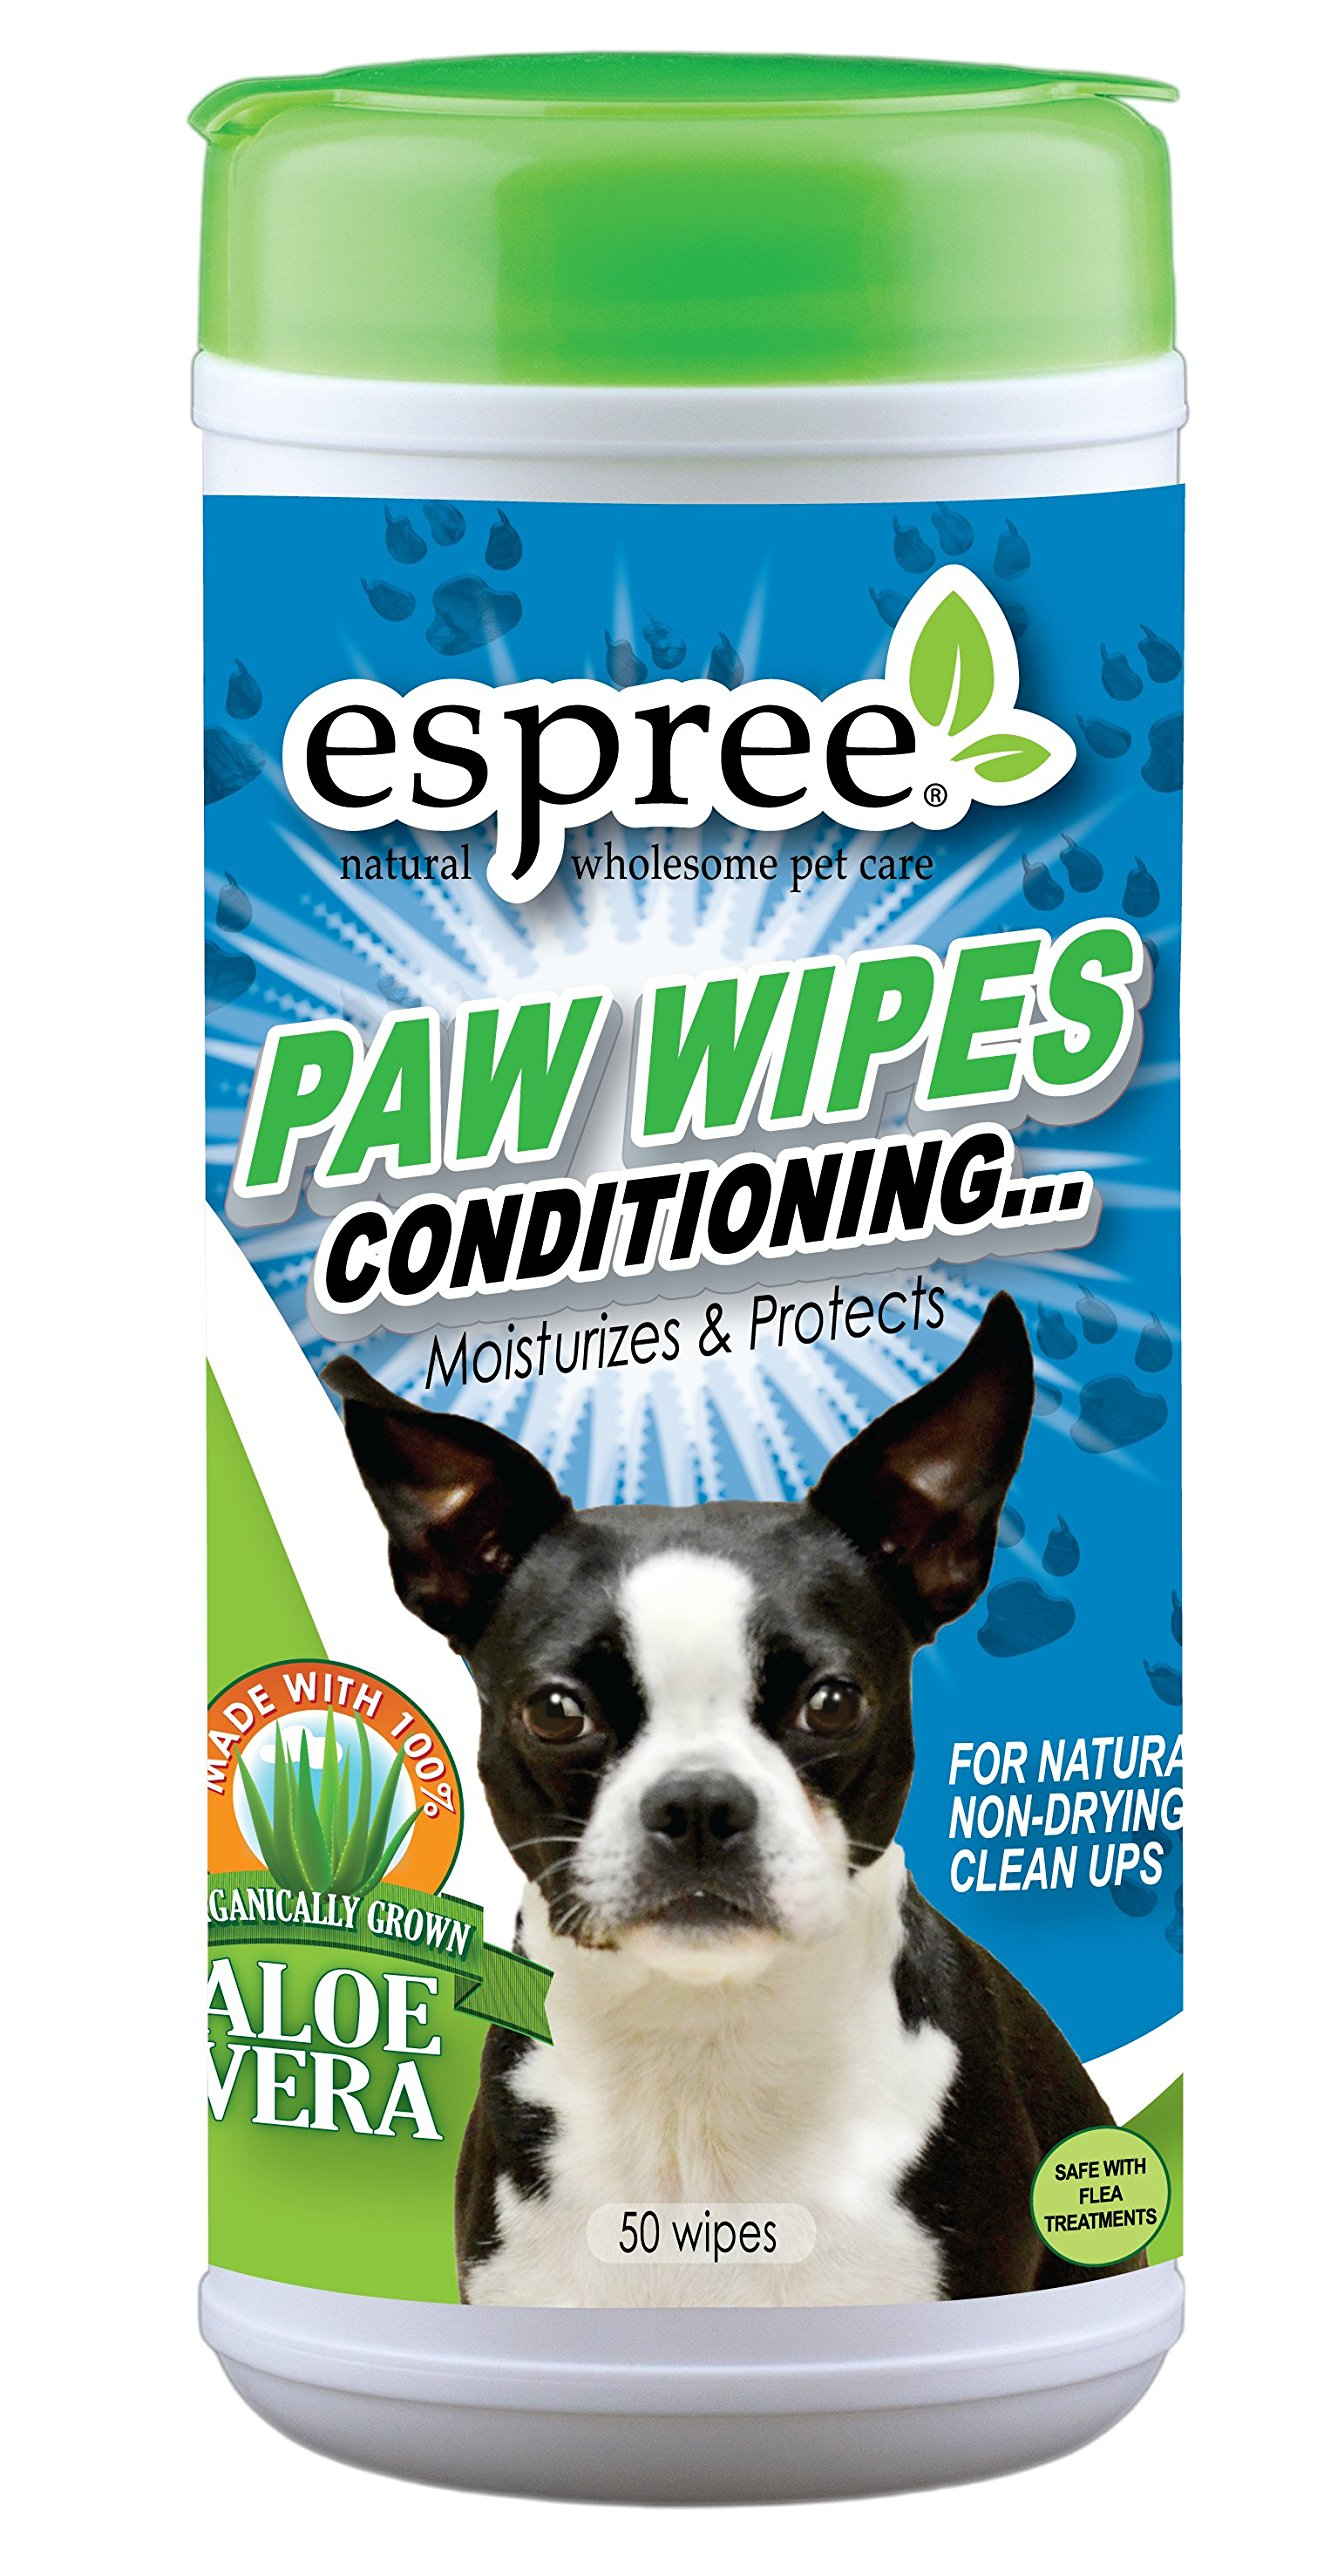 Espree Paw Wipes Conditioning, 50 Count